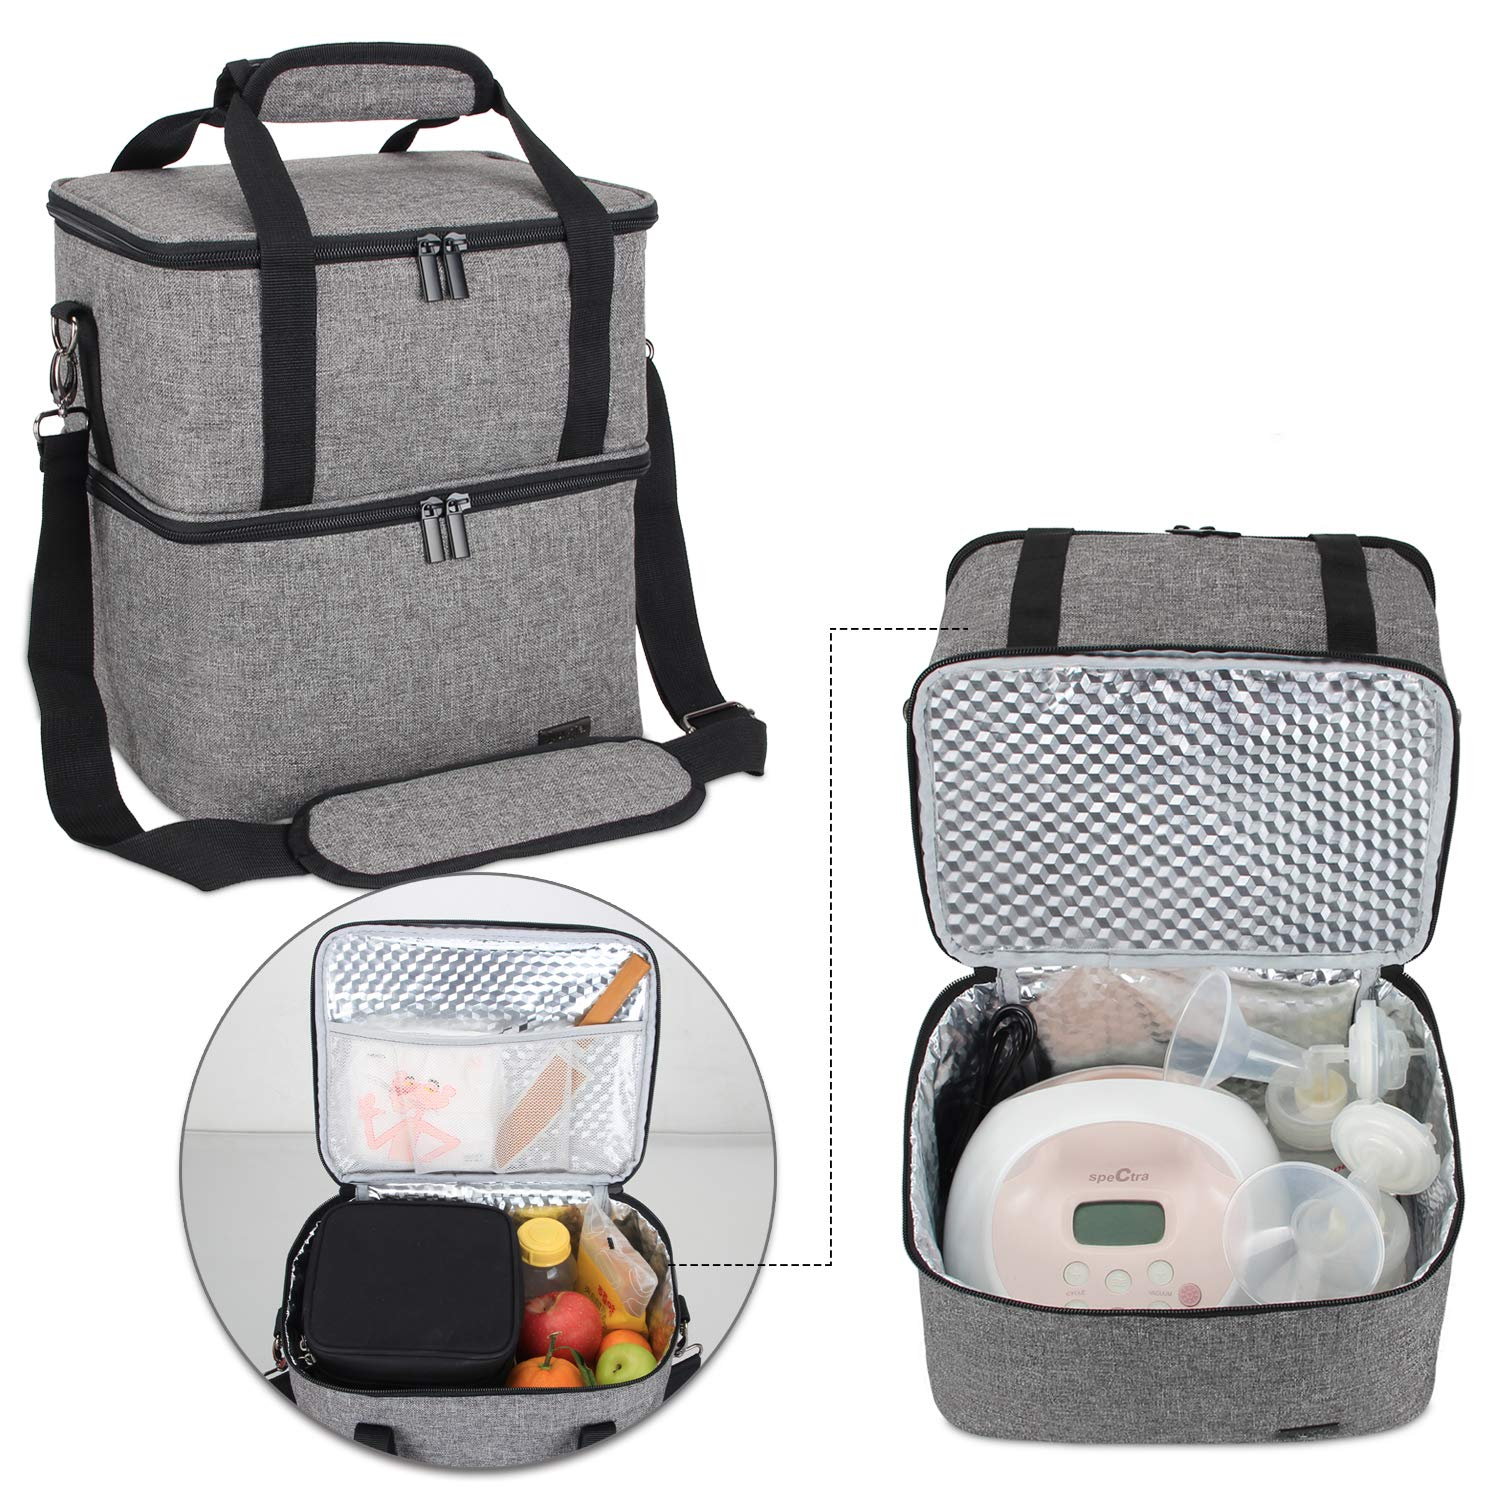 Luxja Breast Pump Bag with 2 Insulated Compartments for Breast Pump and Cooler Bag Fits Most Major Breast Pump Pumping Bag for Working Mothers Gray